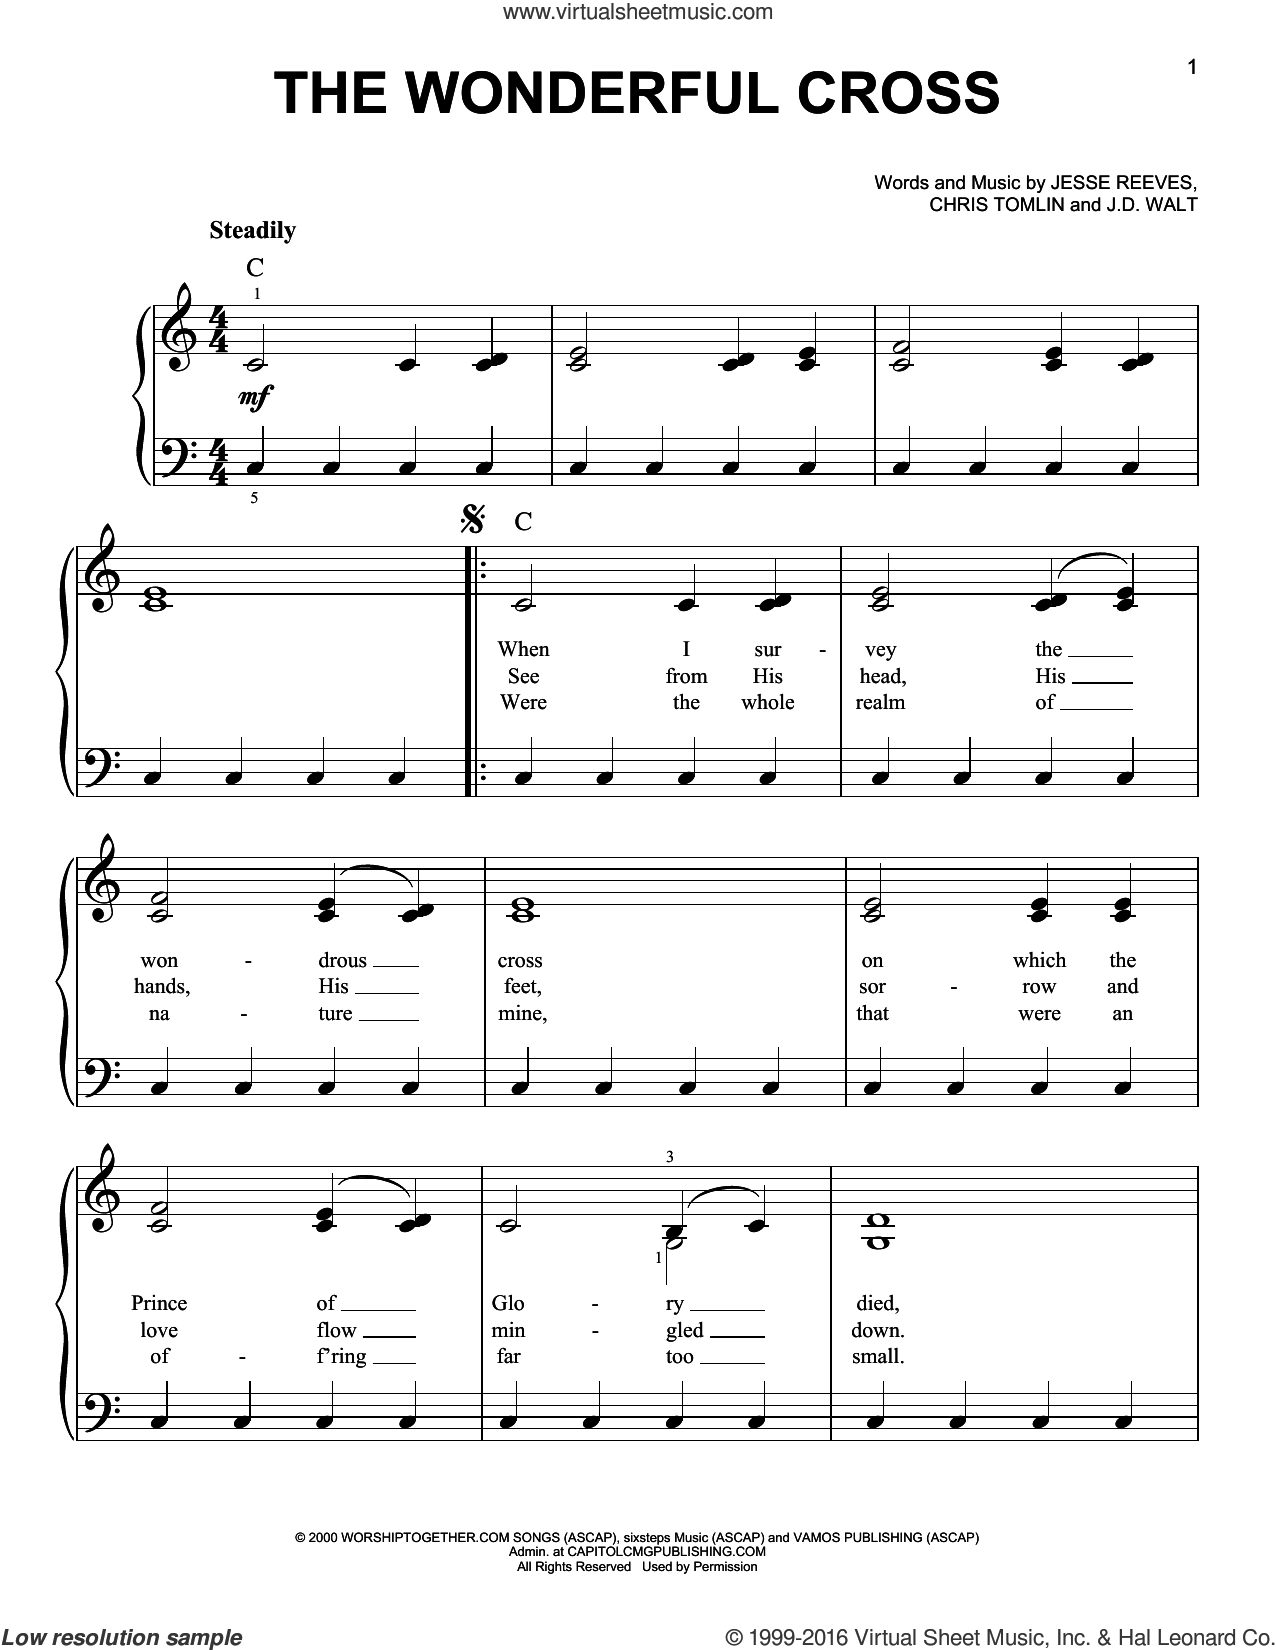 The Wonderful Cross sheet music for piano solo by Phillips, Craig & Dean, Chris Tomlin, J.D. Walt and Jesse Reeves, easy